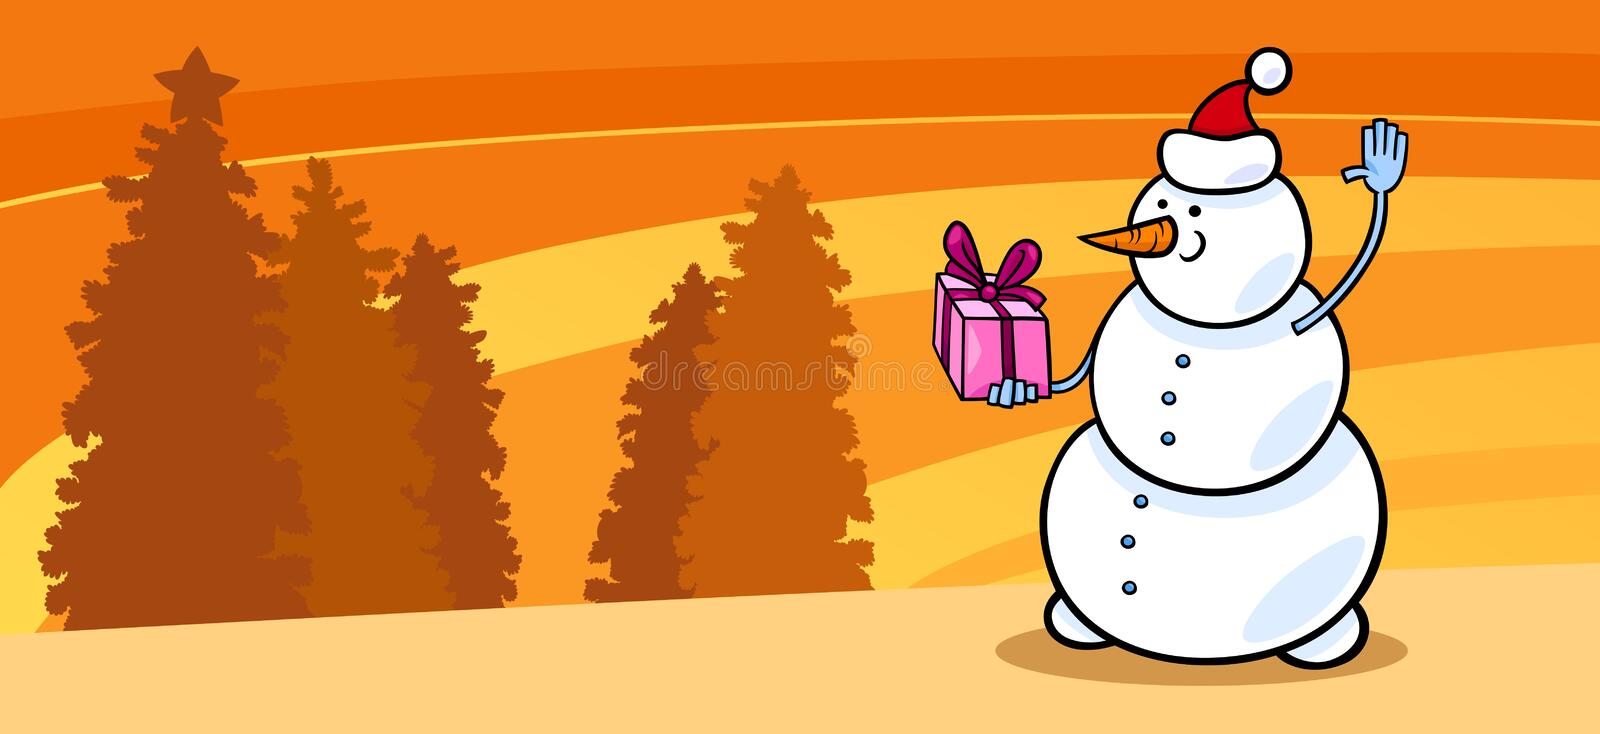 Download Snowman Santa With Gift Cartoon Card Royalty Free Stock Photo - Image: 34620185